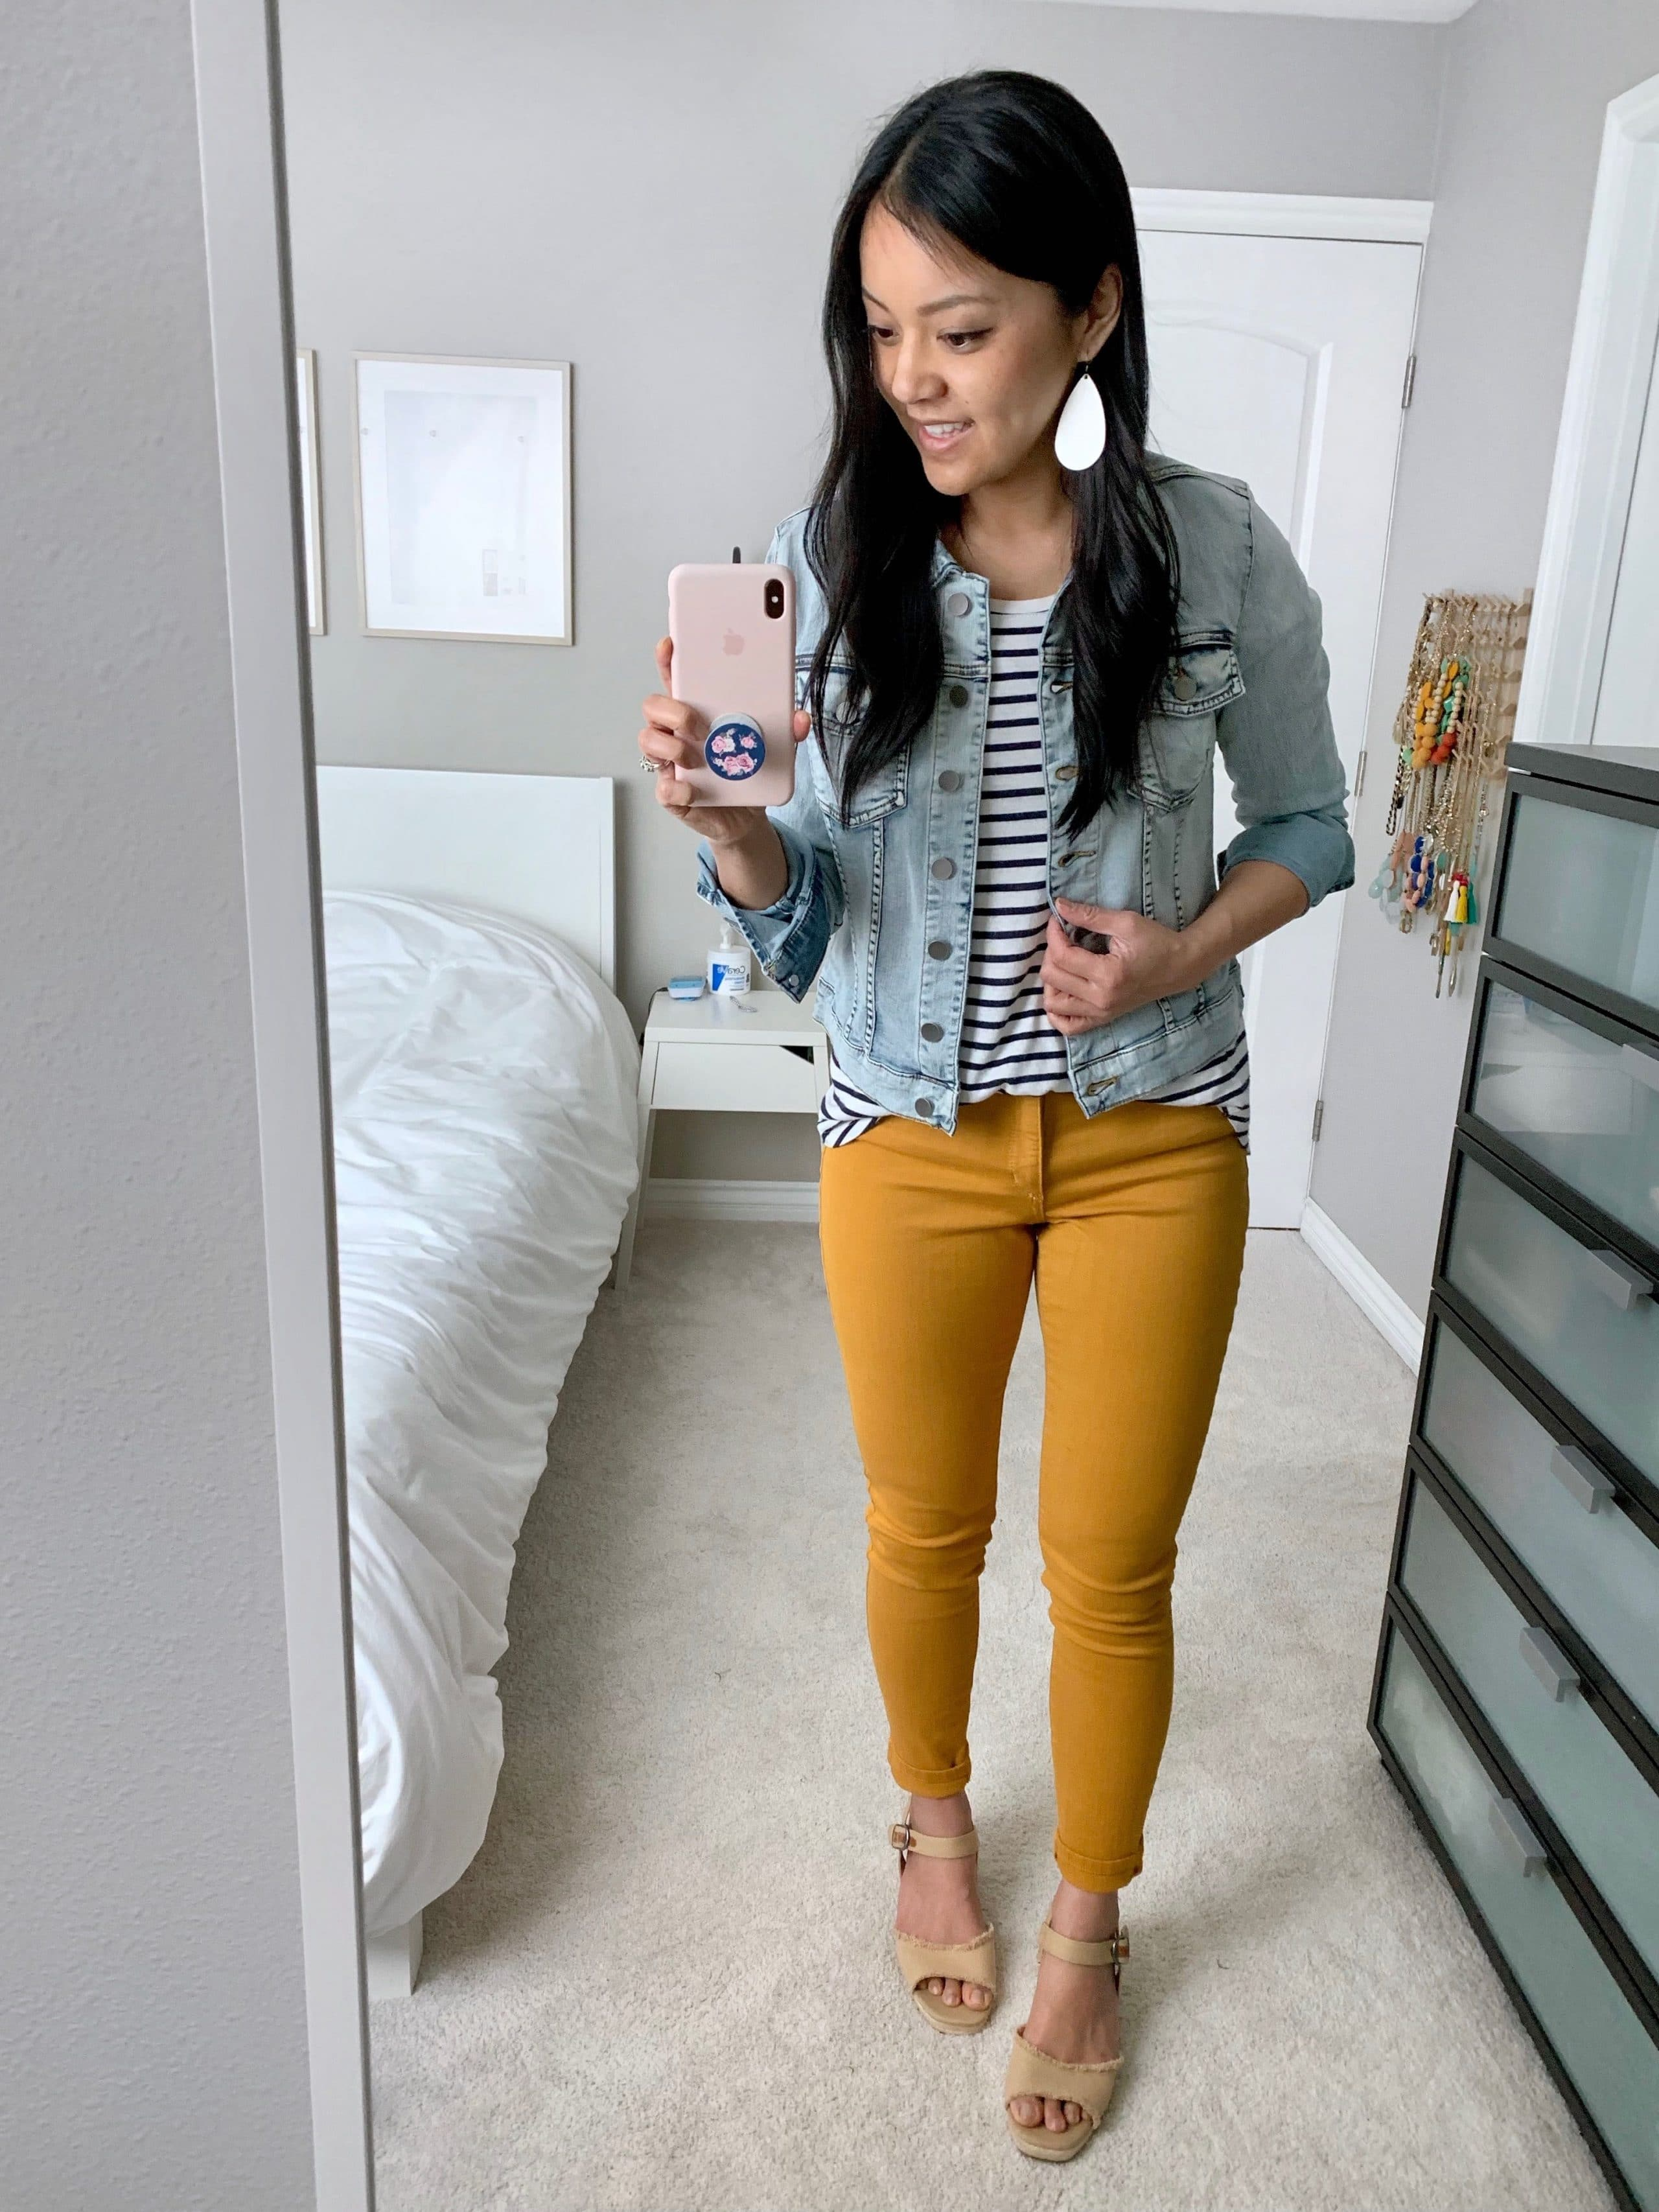 Mustard Yellow Jeans + Striped Tee + Denim Jacket